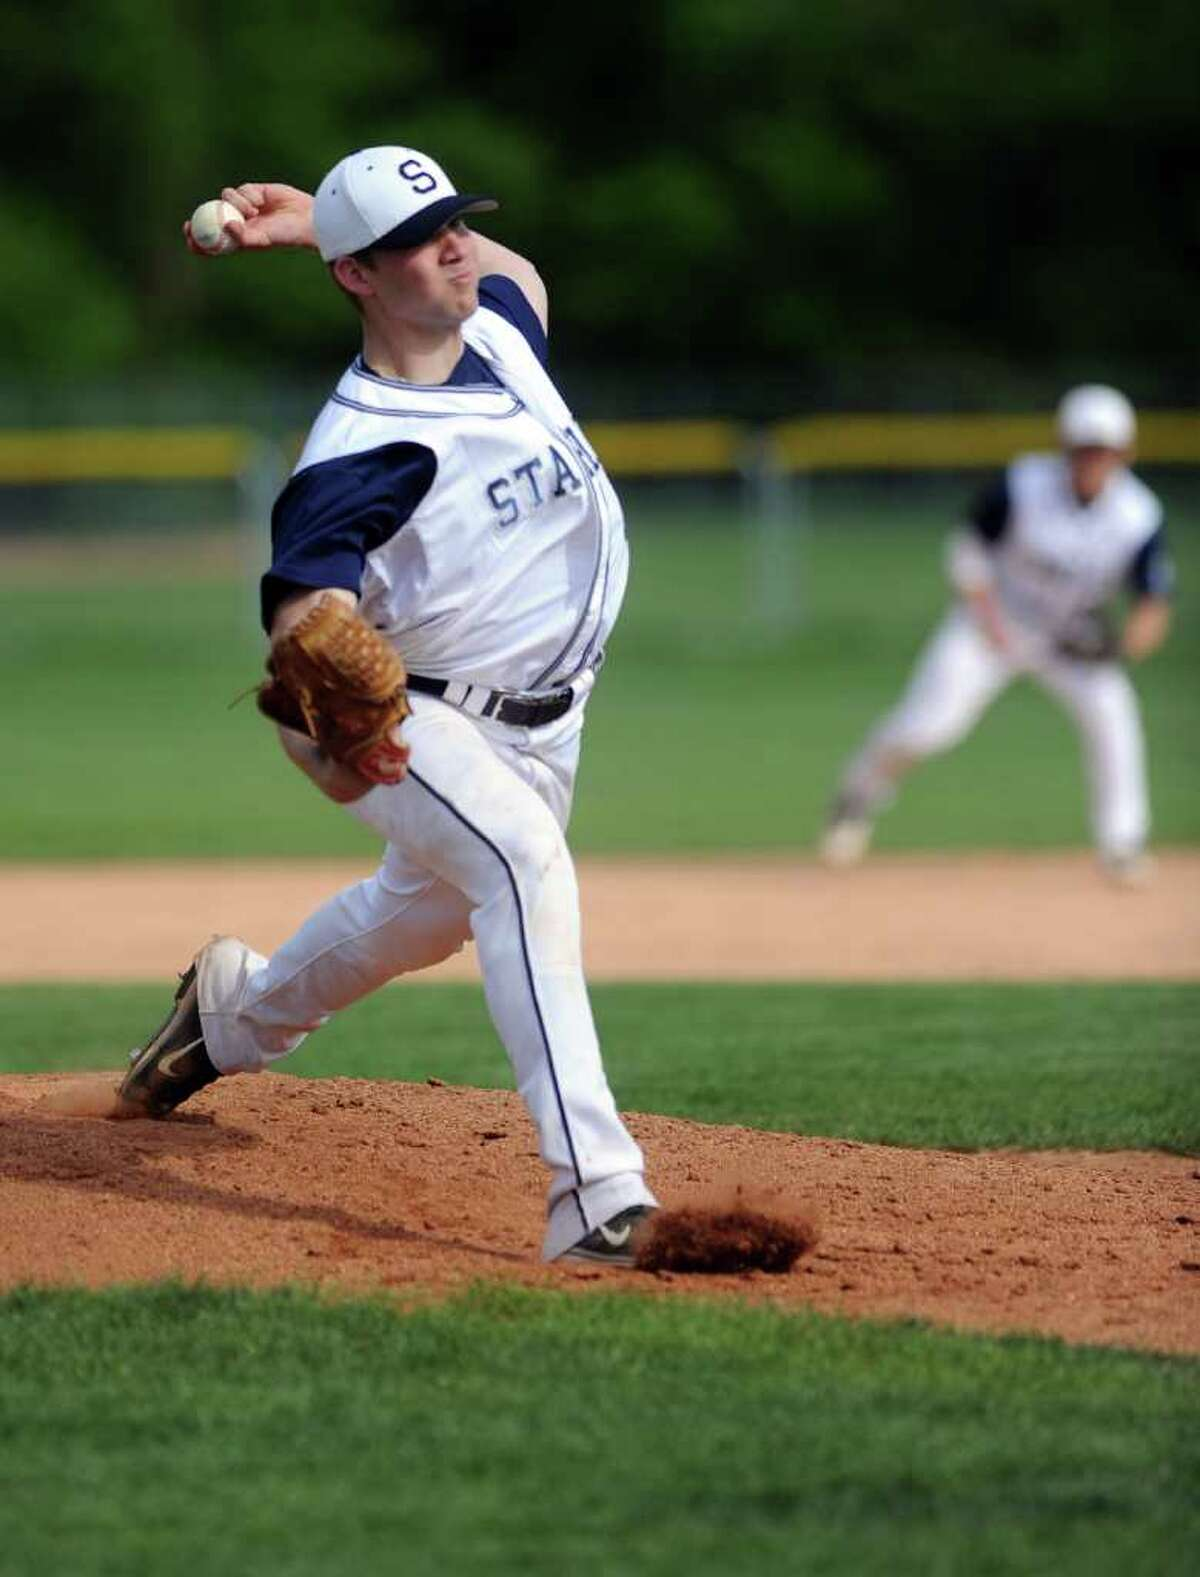 Rob Gau pitches during Wednesday's game against Wilton at Staples High School on May 11, 2011.